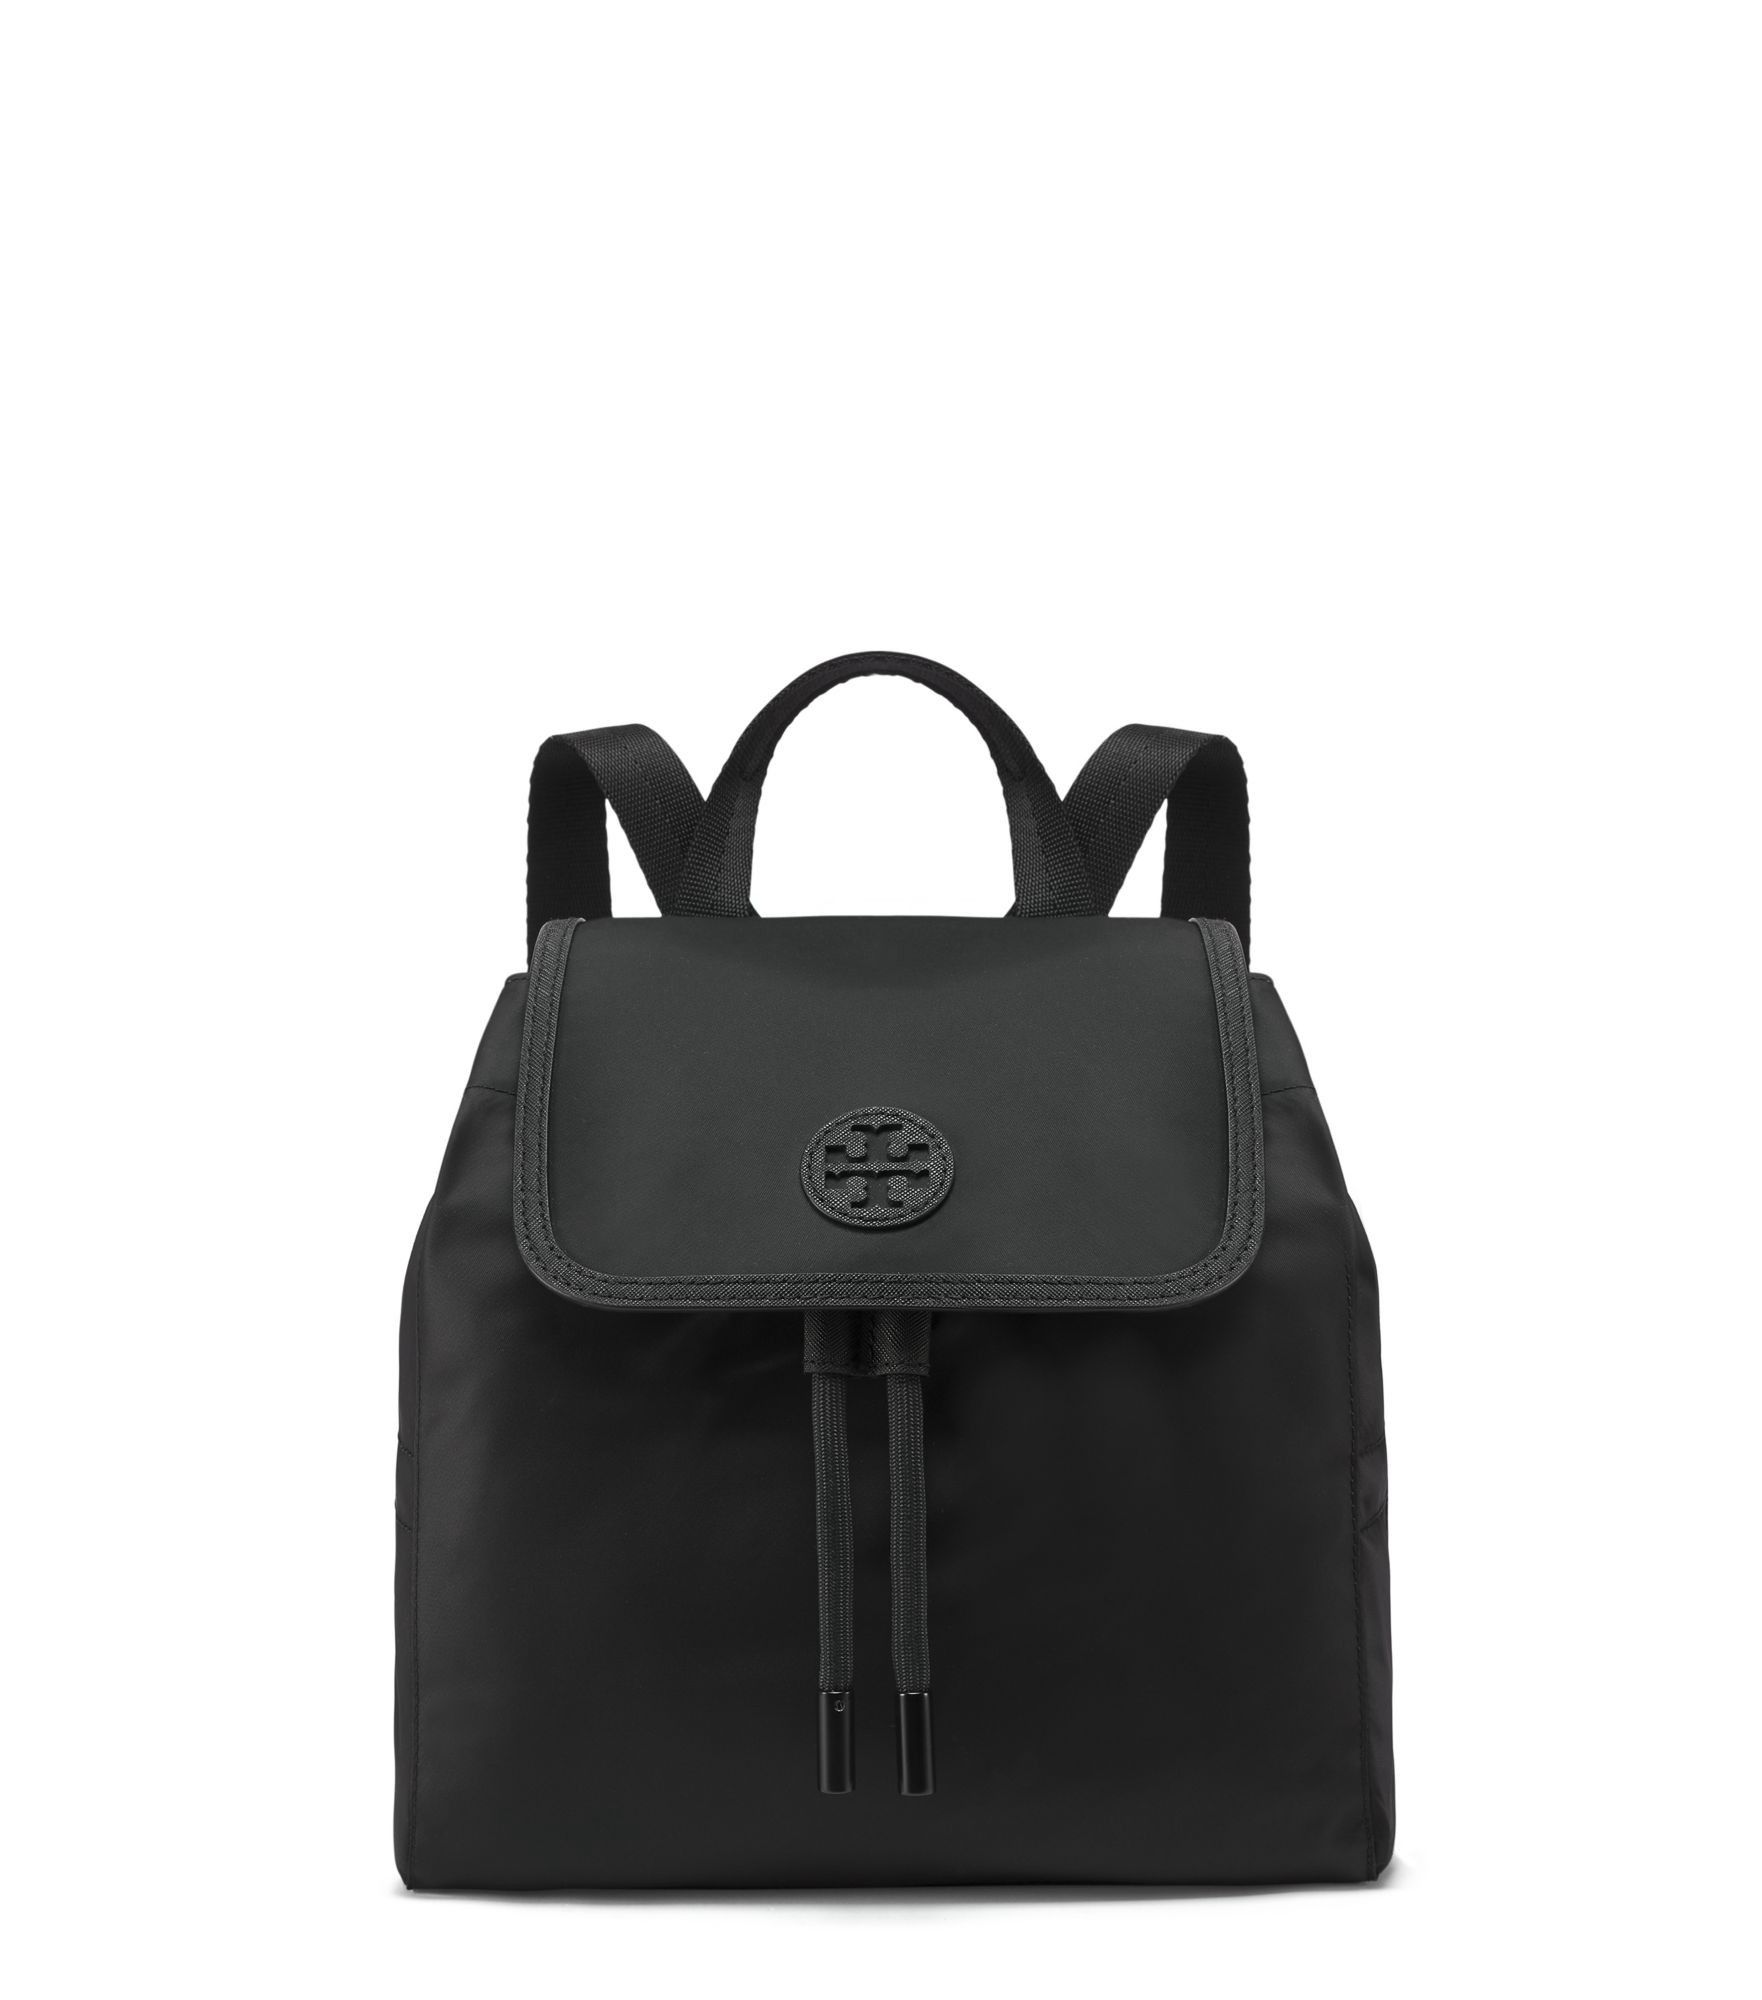 Visit Tory Burch to shop for Scout Small Backpack and more Womens View All.  Find designer shoes, handbags, clothing & more of this season's latest  styles ...